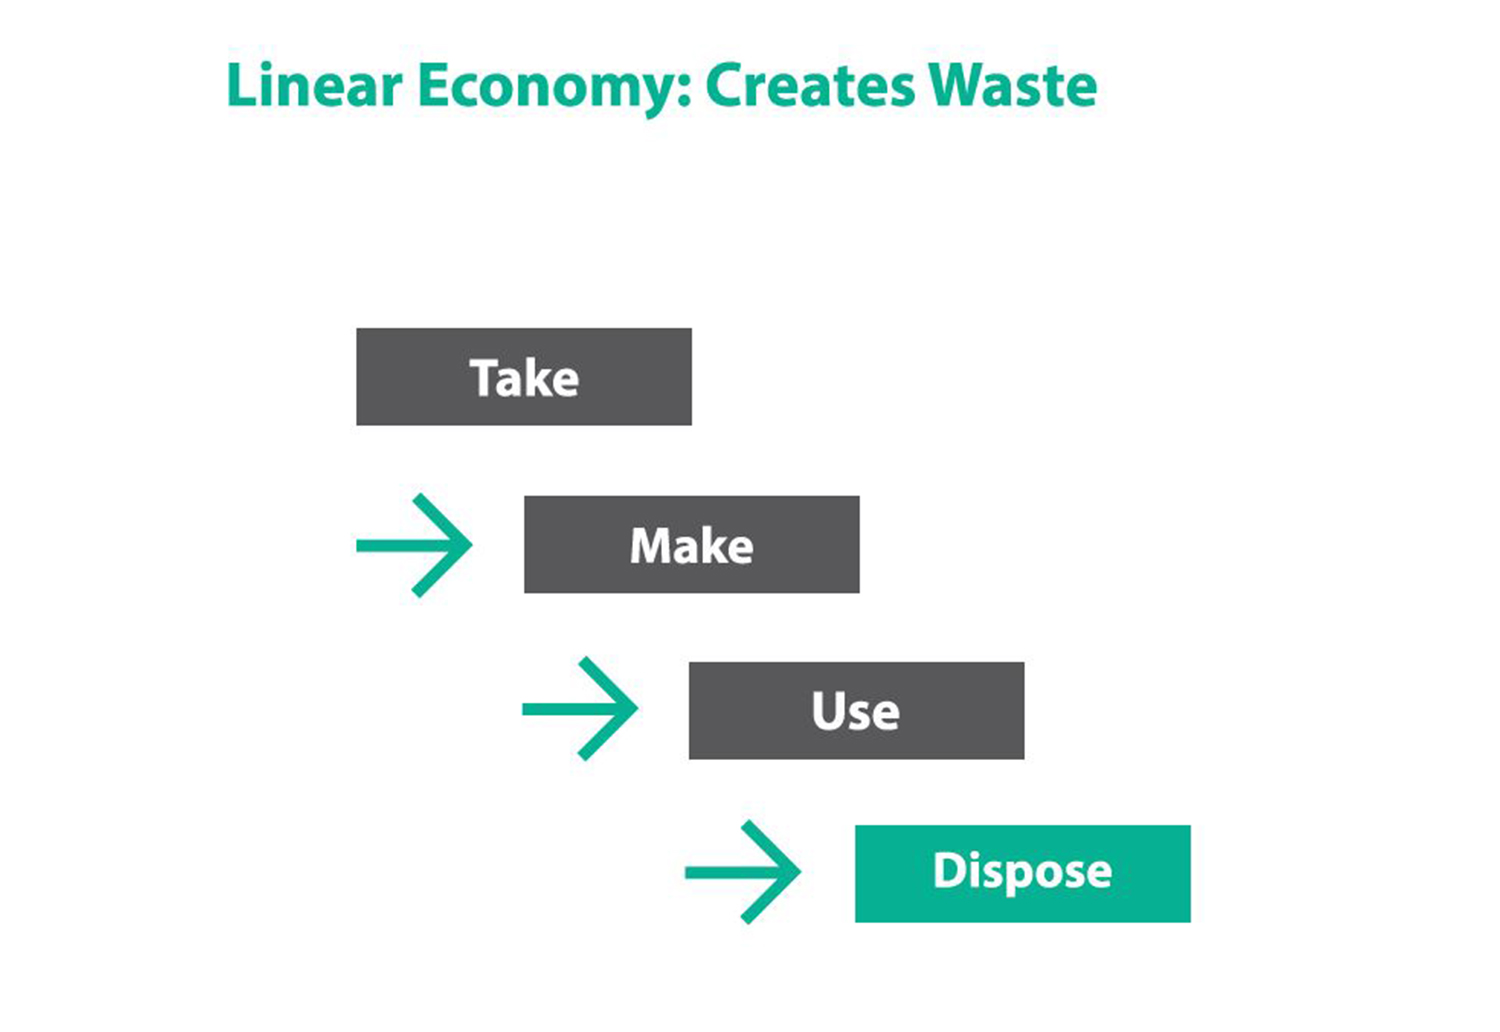 Image of Linear Economy, showing make, take, use, dispose